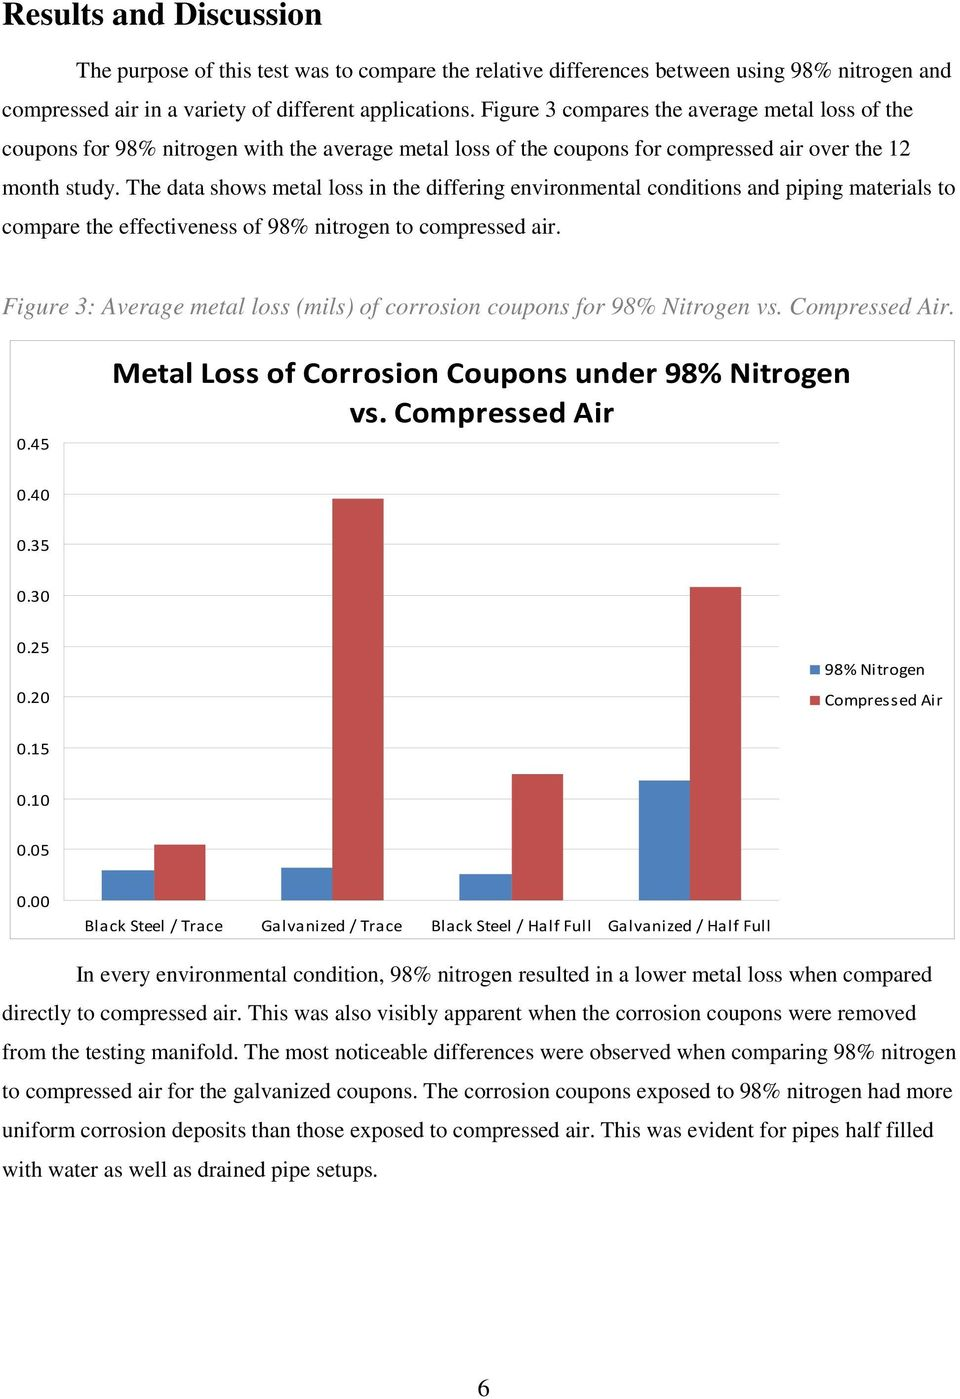 The data shows metal loss in the differing environmental conditions and piping materials to compare the effectiveness of 98% nitrogen to compressed air.